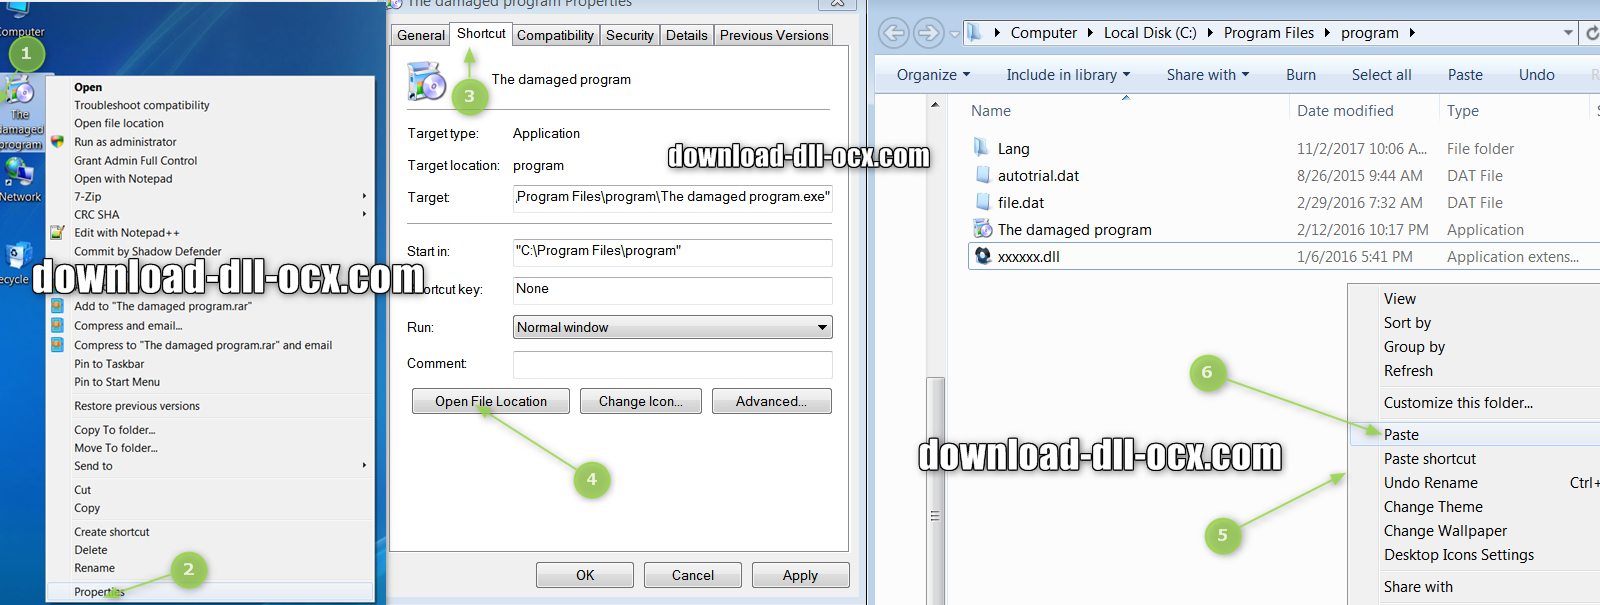 how to install Agt0416.dll file? for fix missing